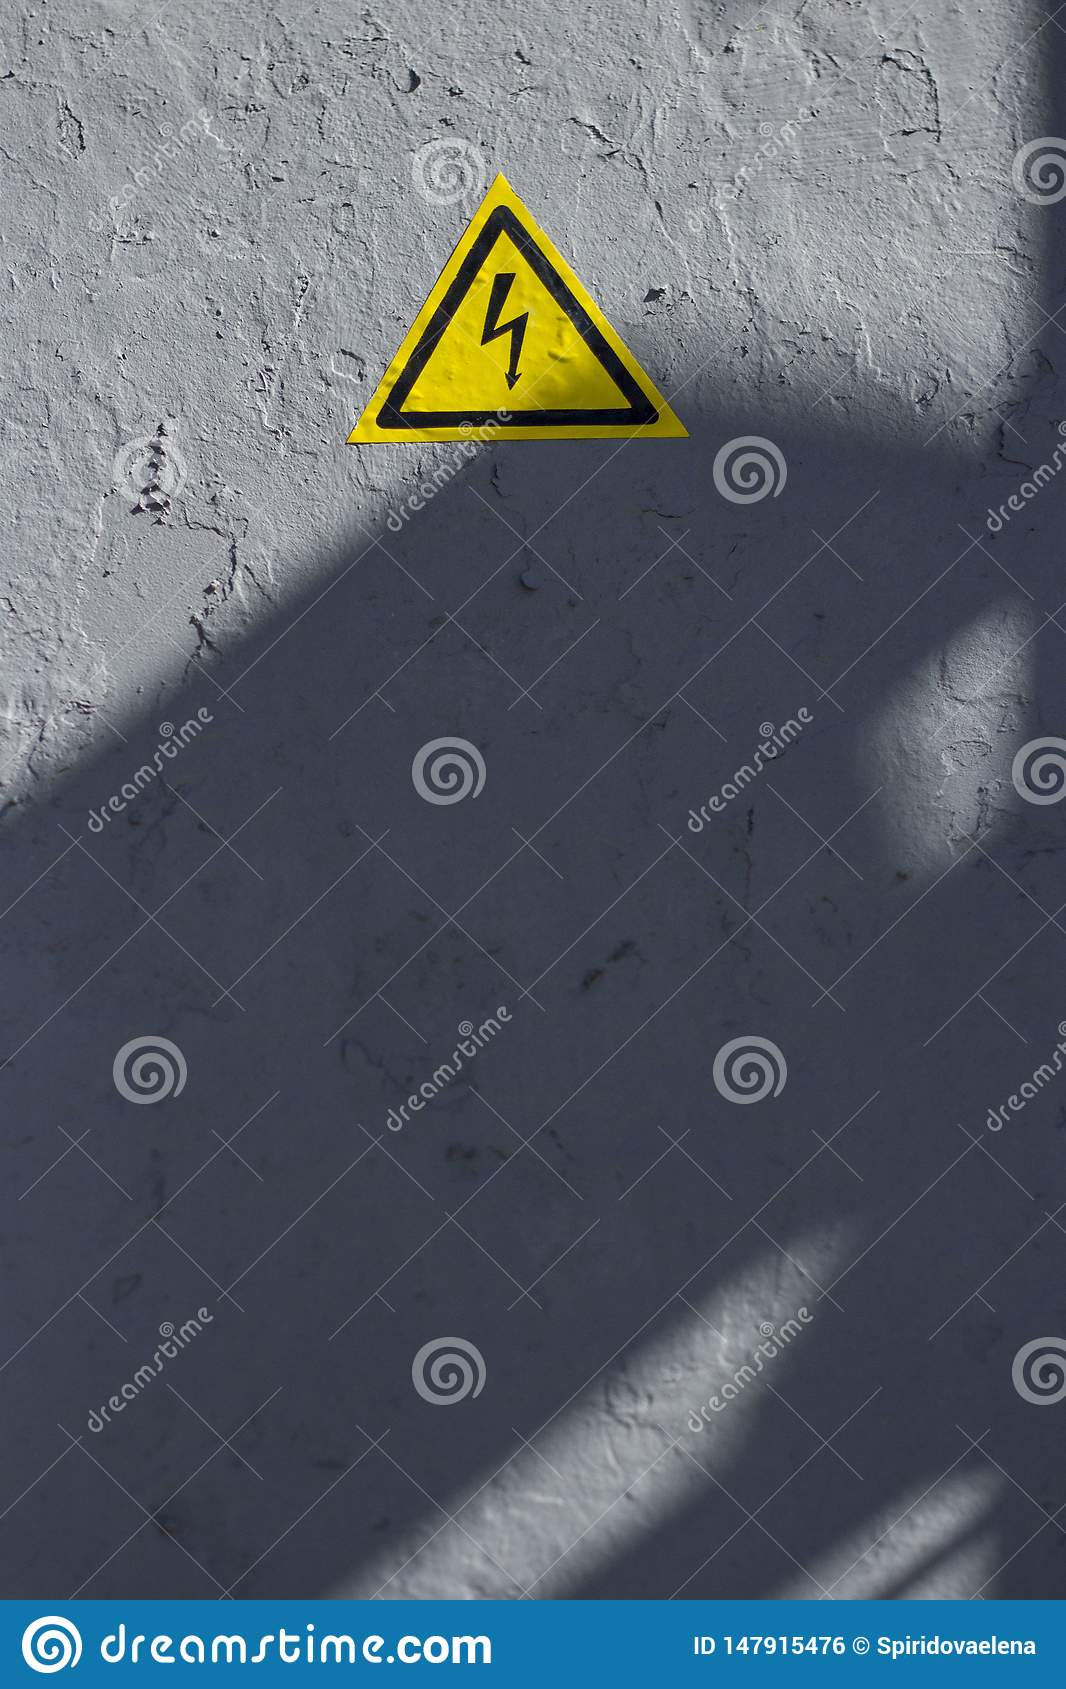 Cracked gray paint with perceiving yellow triangle icon